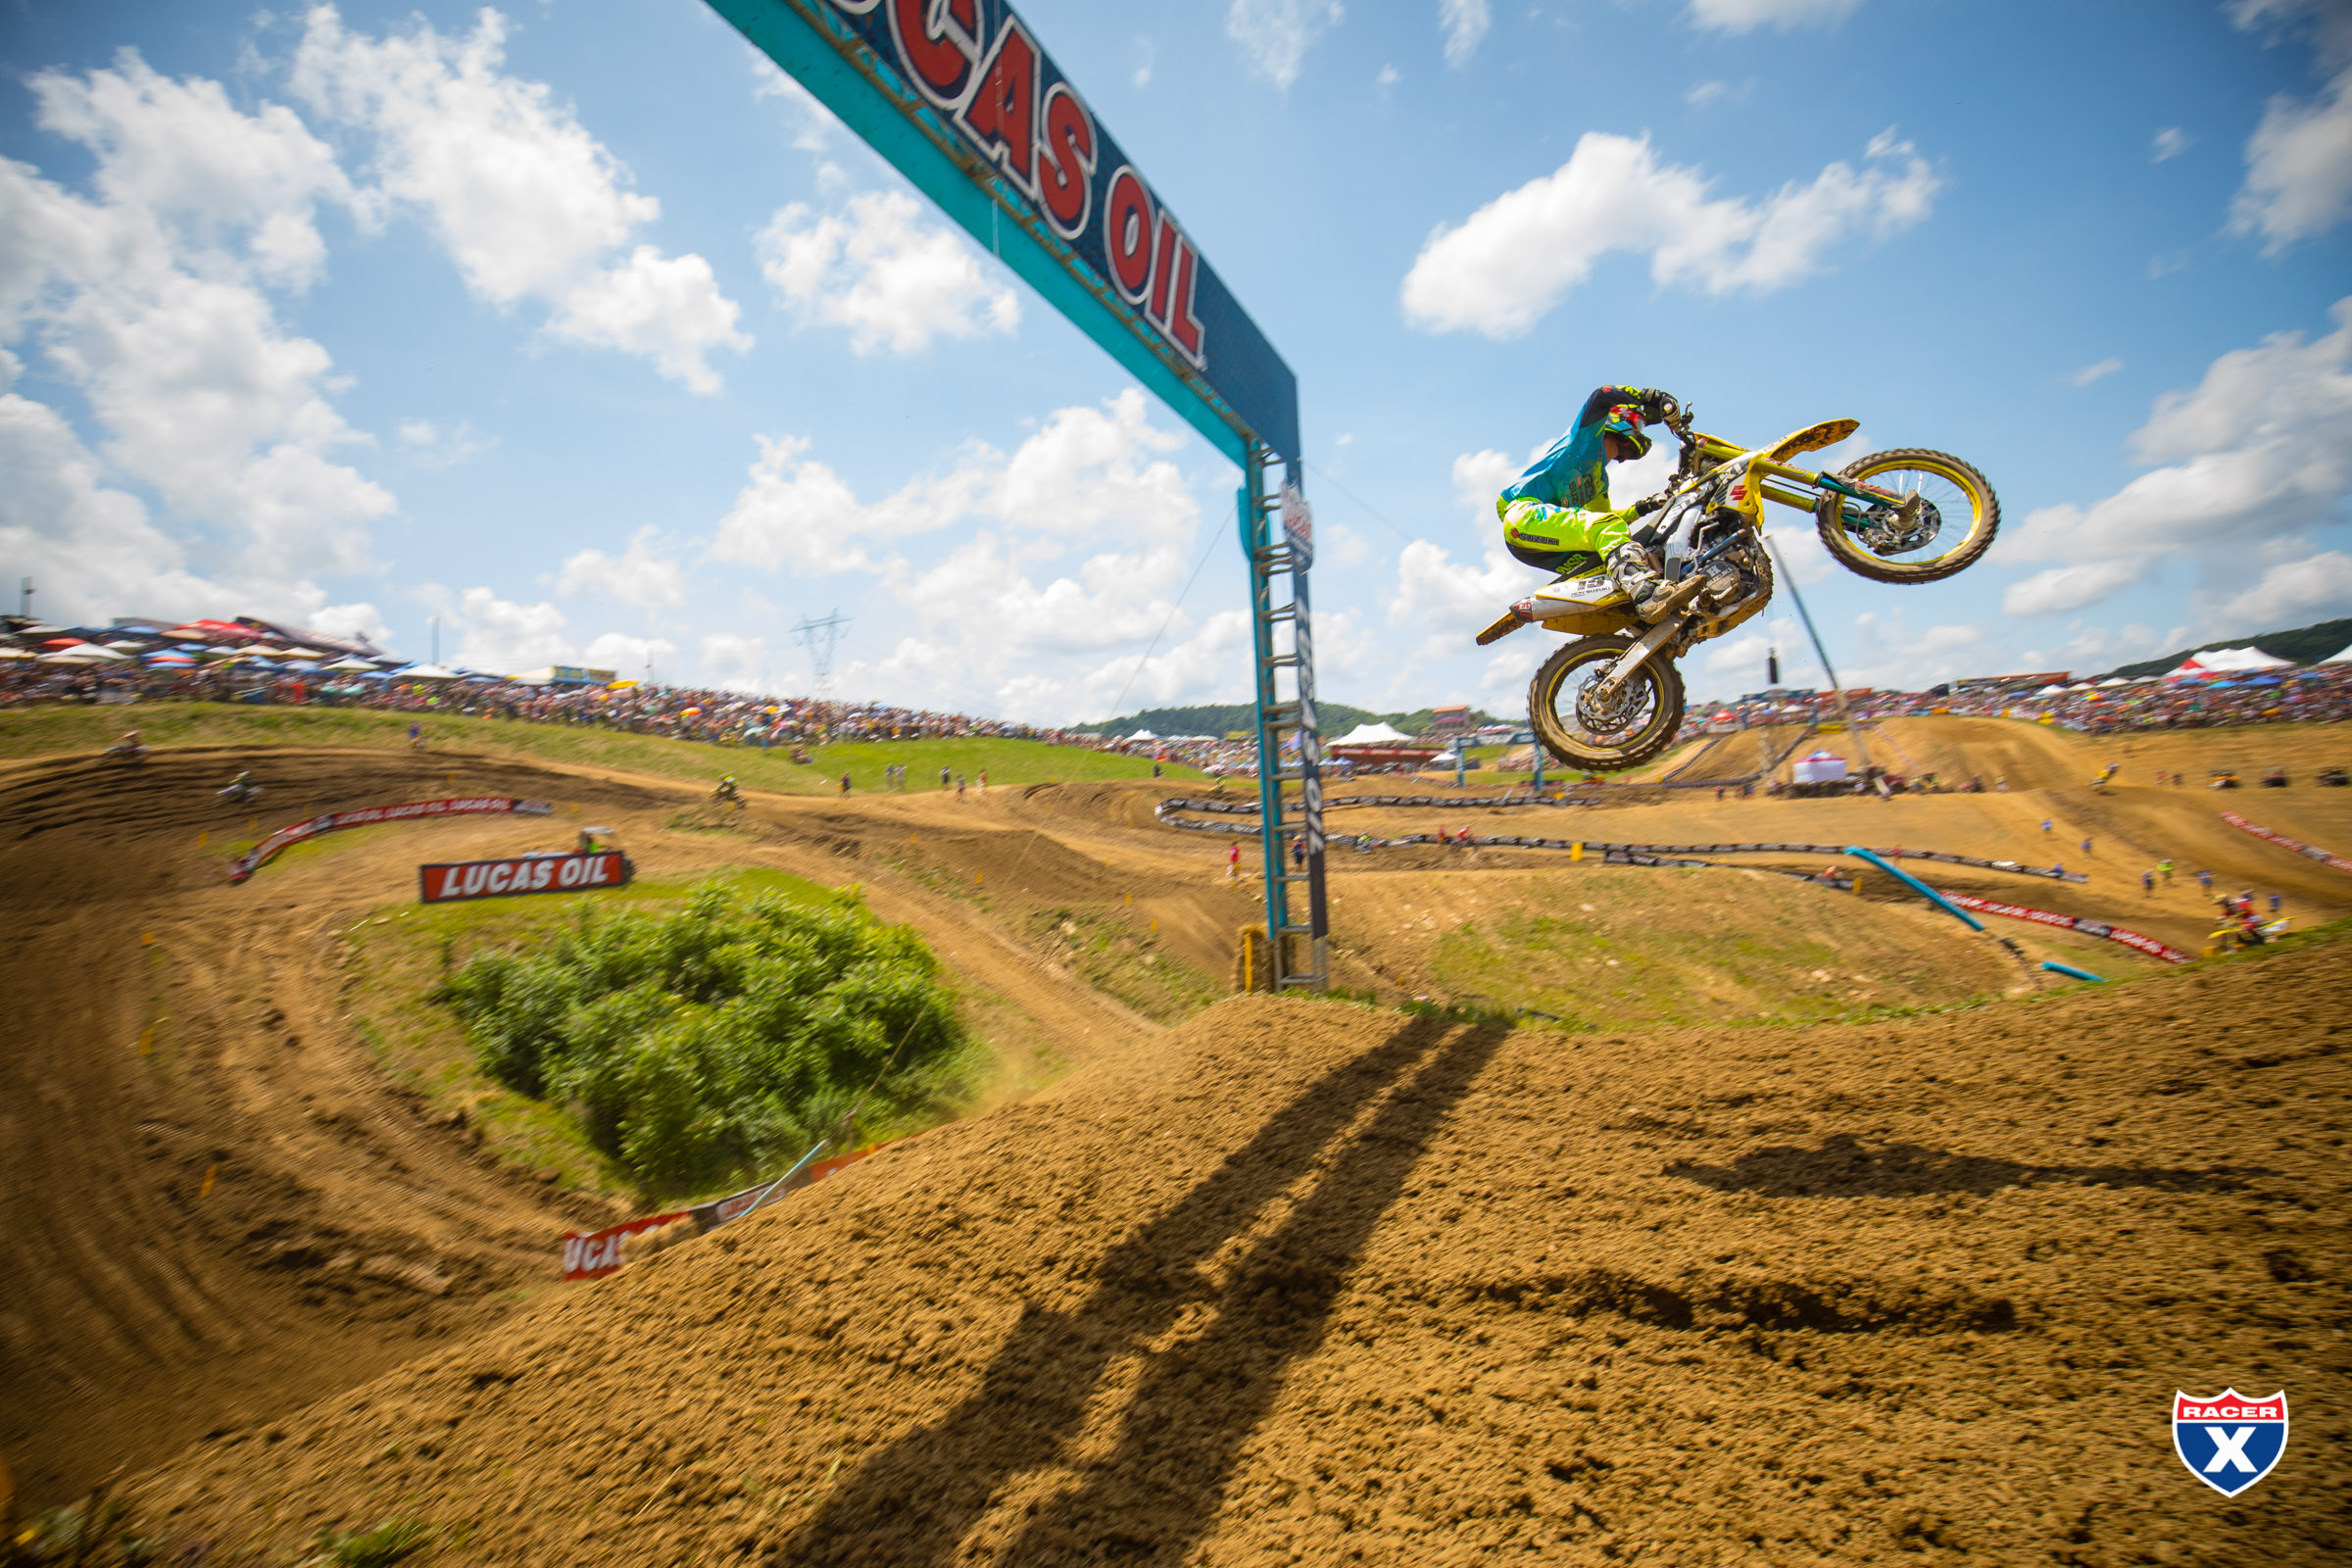 Bogle_MX17_HighPoint_JK_1441